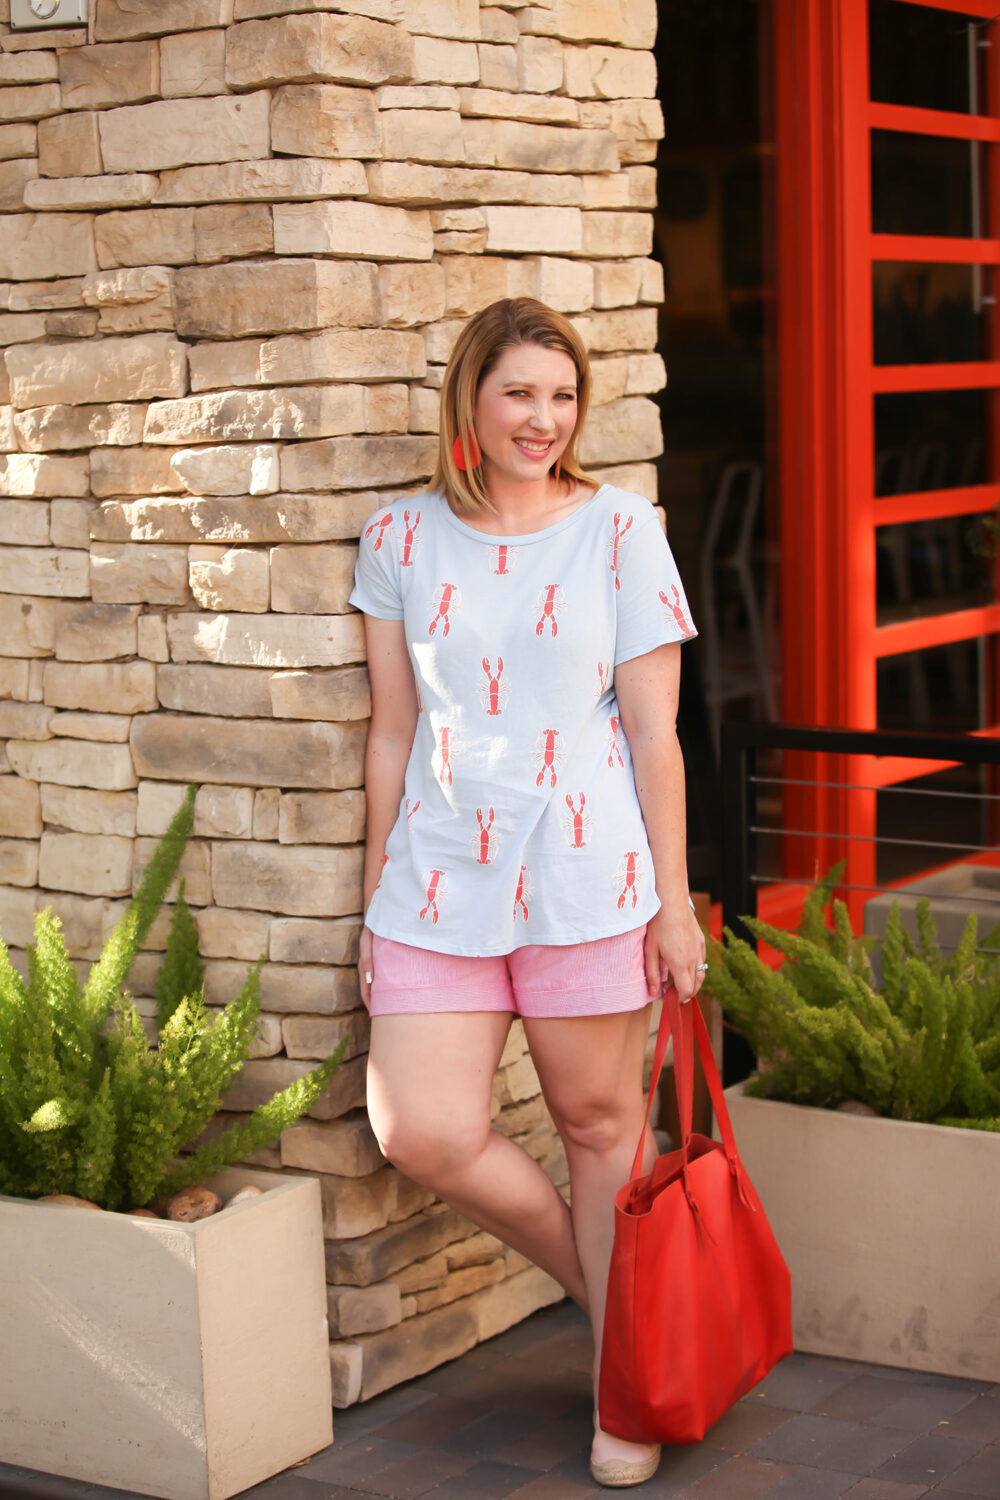 Looking for simple summer outfit pieces without hassle? These seersucker shorts are from Stitch Fix, and they're perfect for warm weather days!